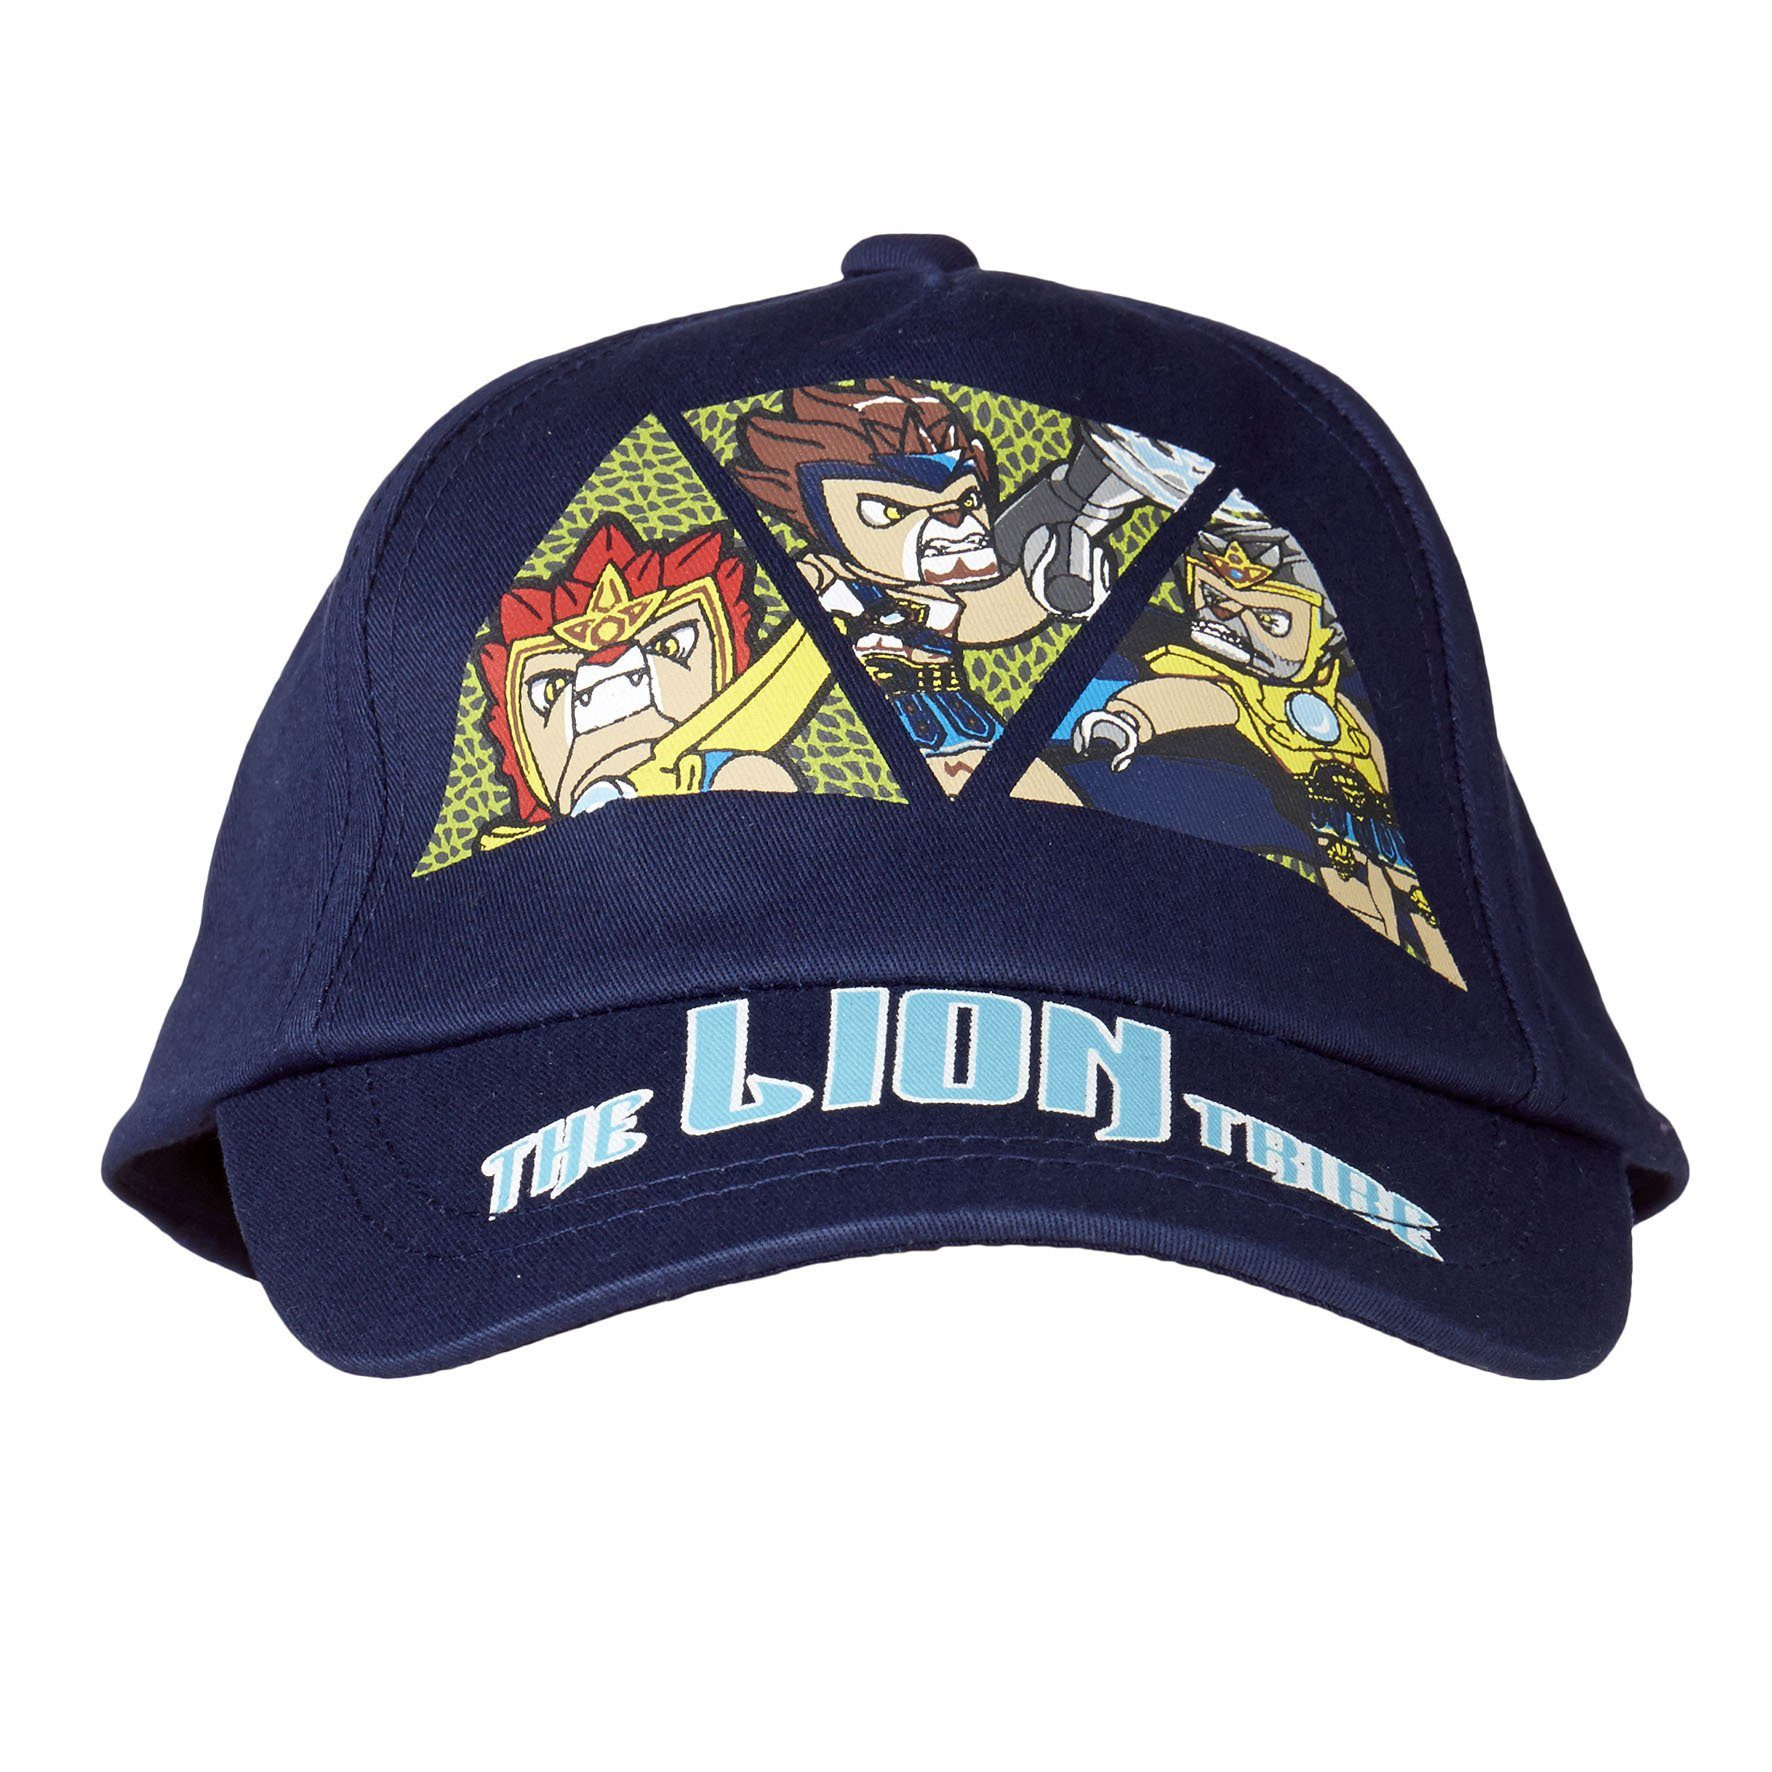 "LEGO Wear Legends of Chima Basecap Carlos Kappe Baseball Mütze ""Lion"""